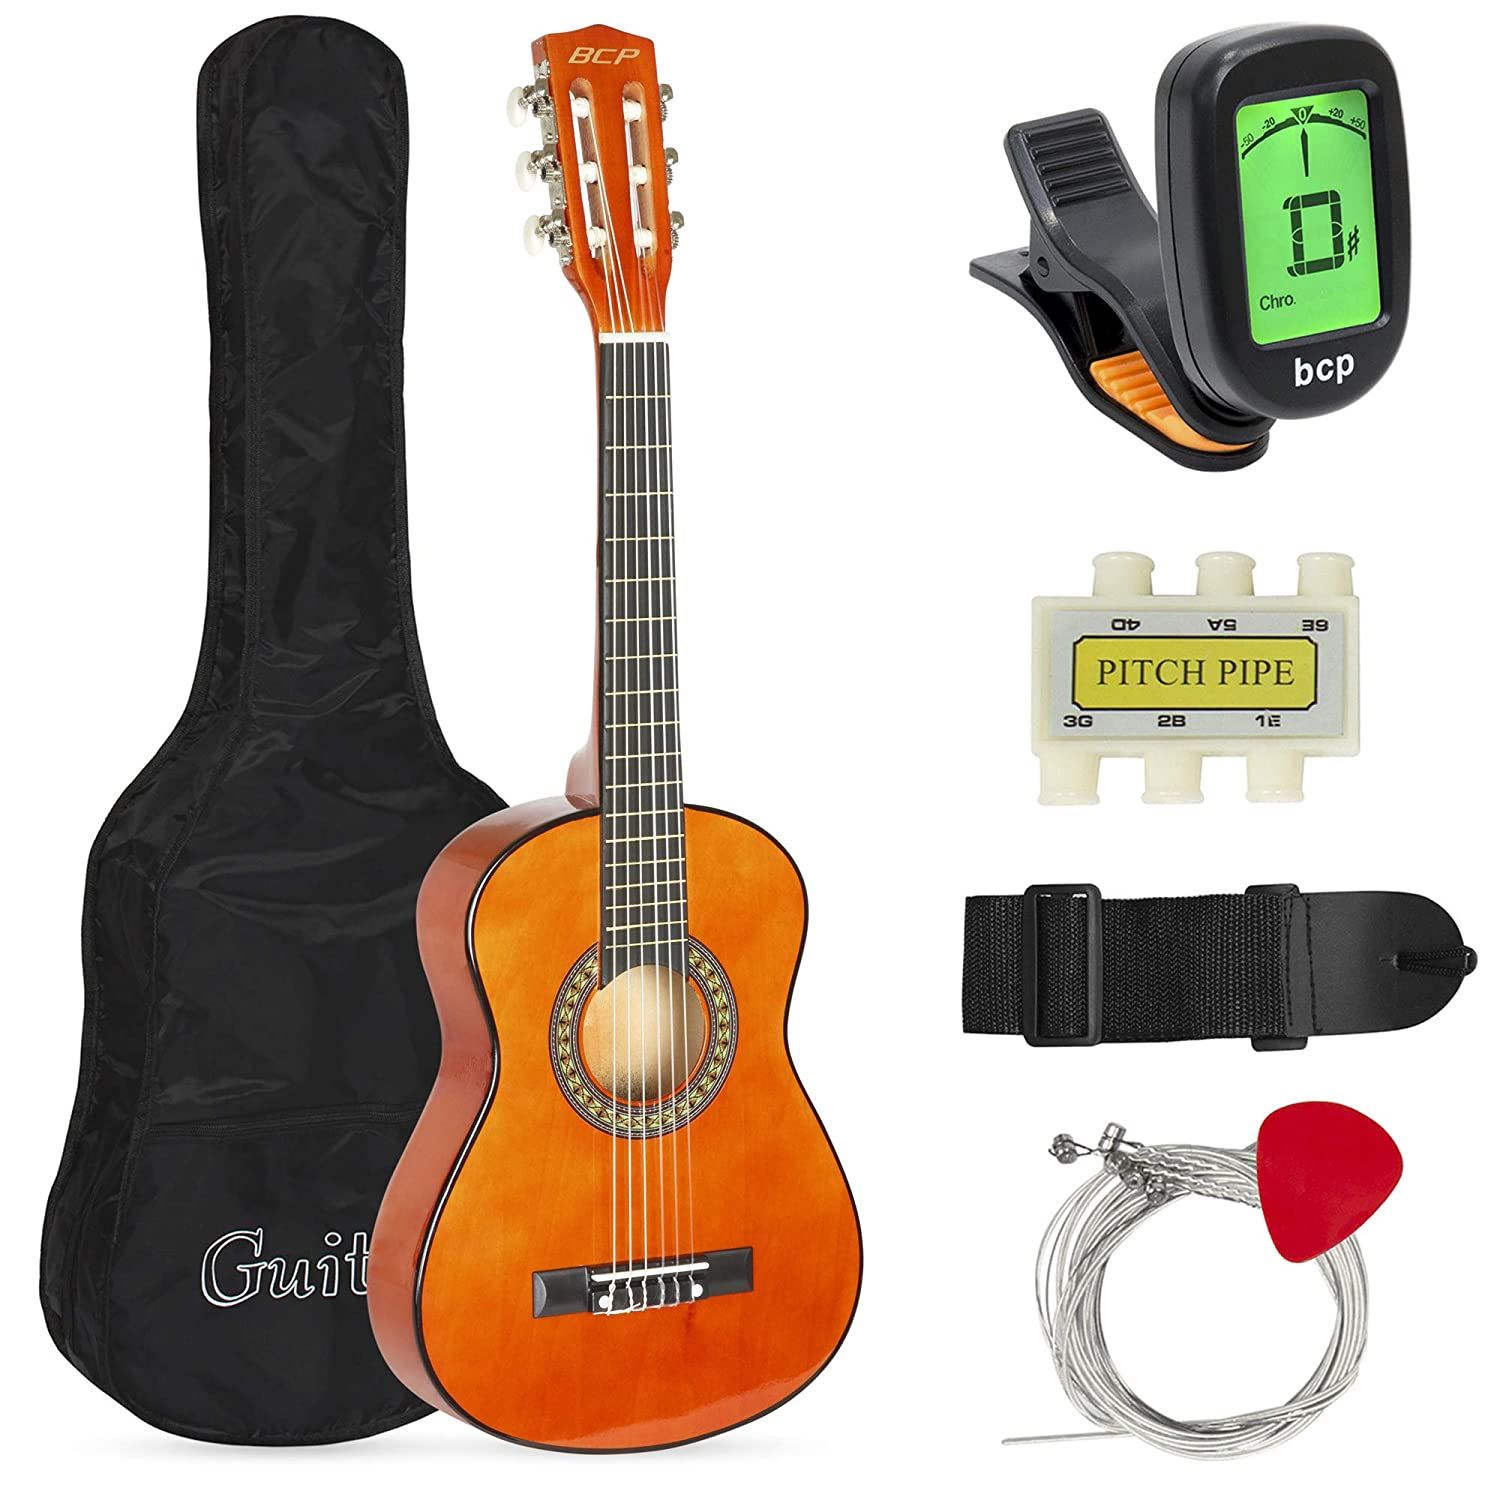 Best Choice Products 30in Classical Acoustic Guitar String Musical Instrument Set Kit for Beginners w/Carry Bag, Picks, E-Tuner, Strap - Black